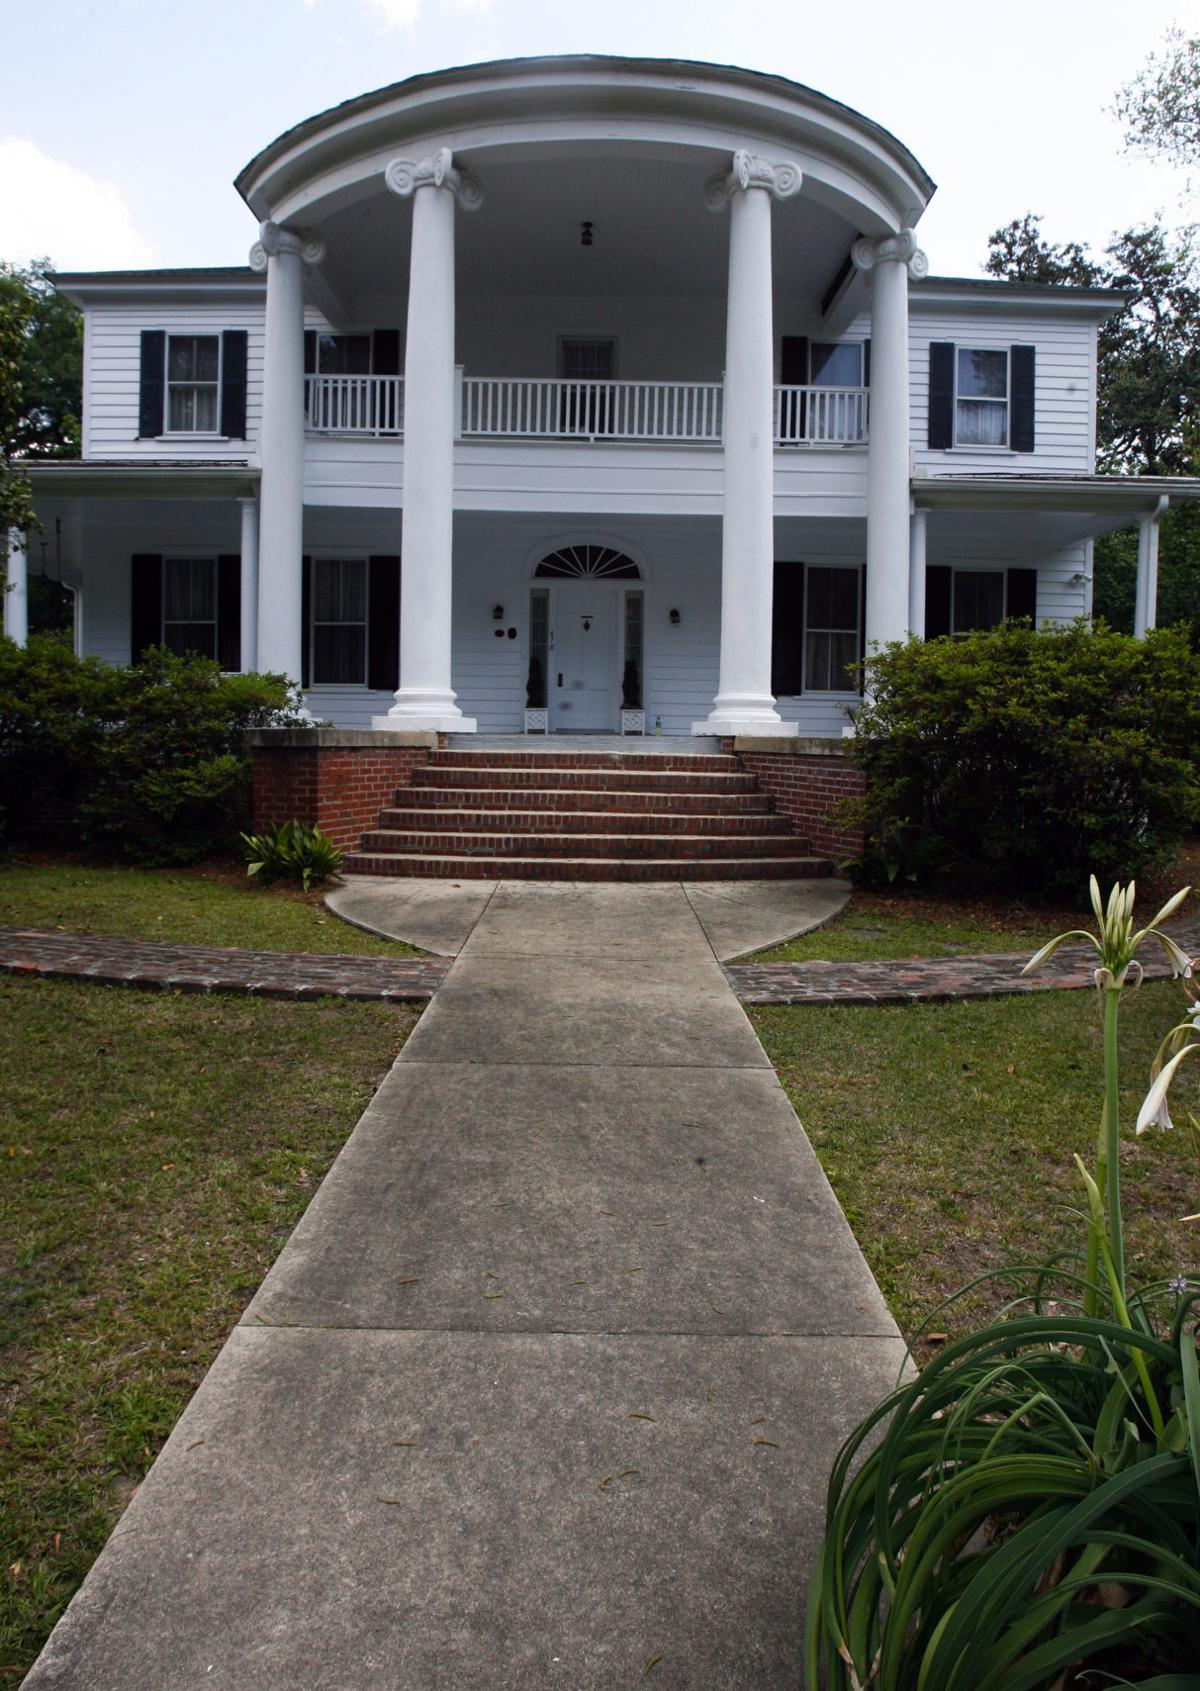 Walterboro Antiques, History & Arts Festival taking place this weekend